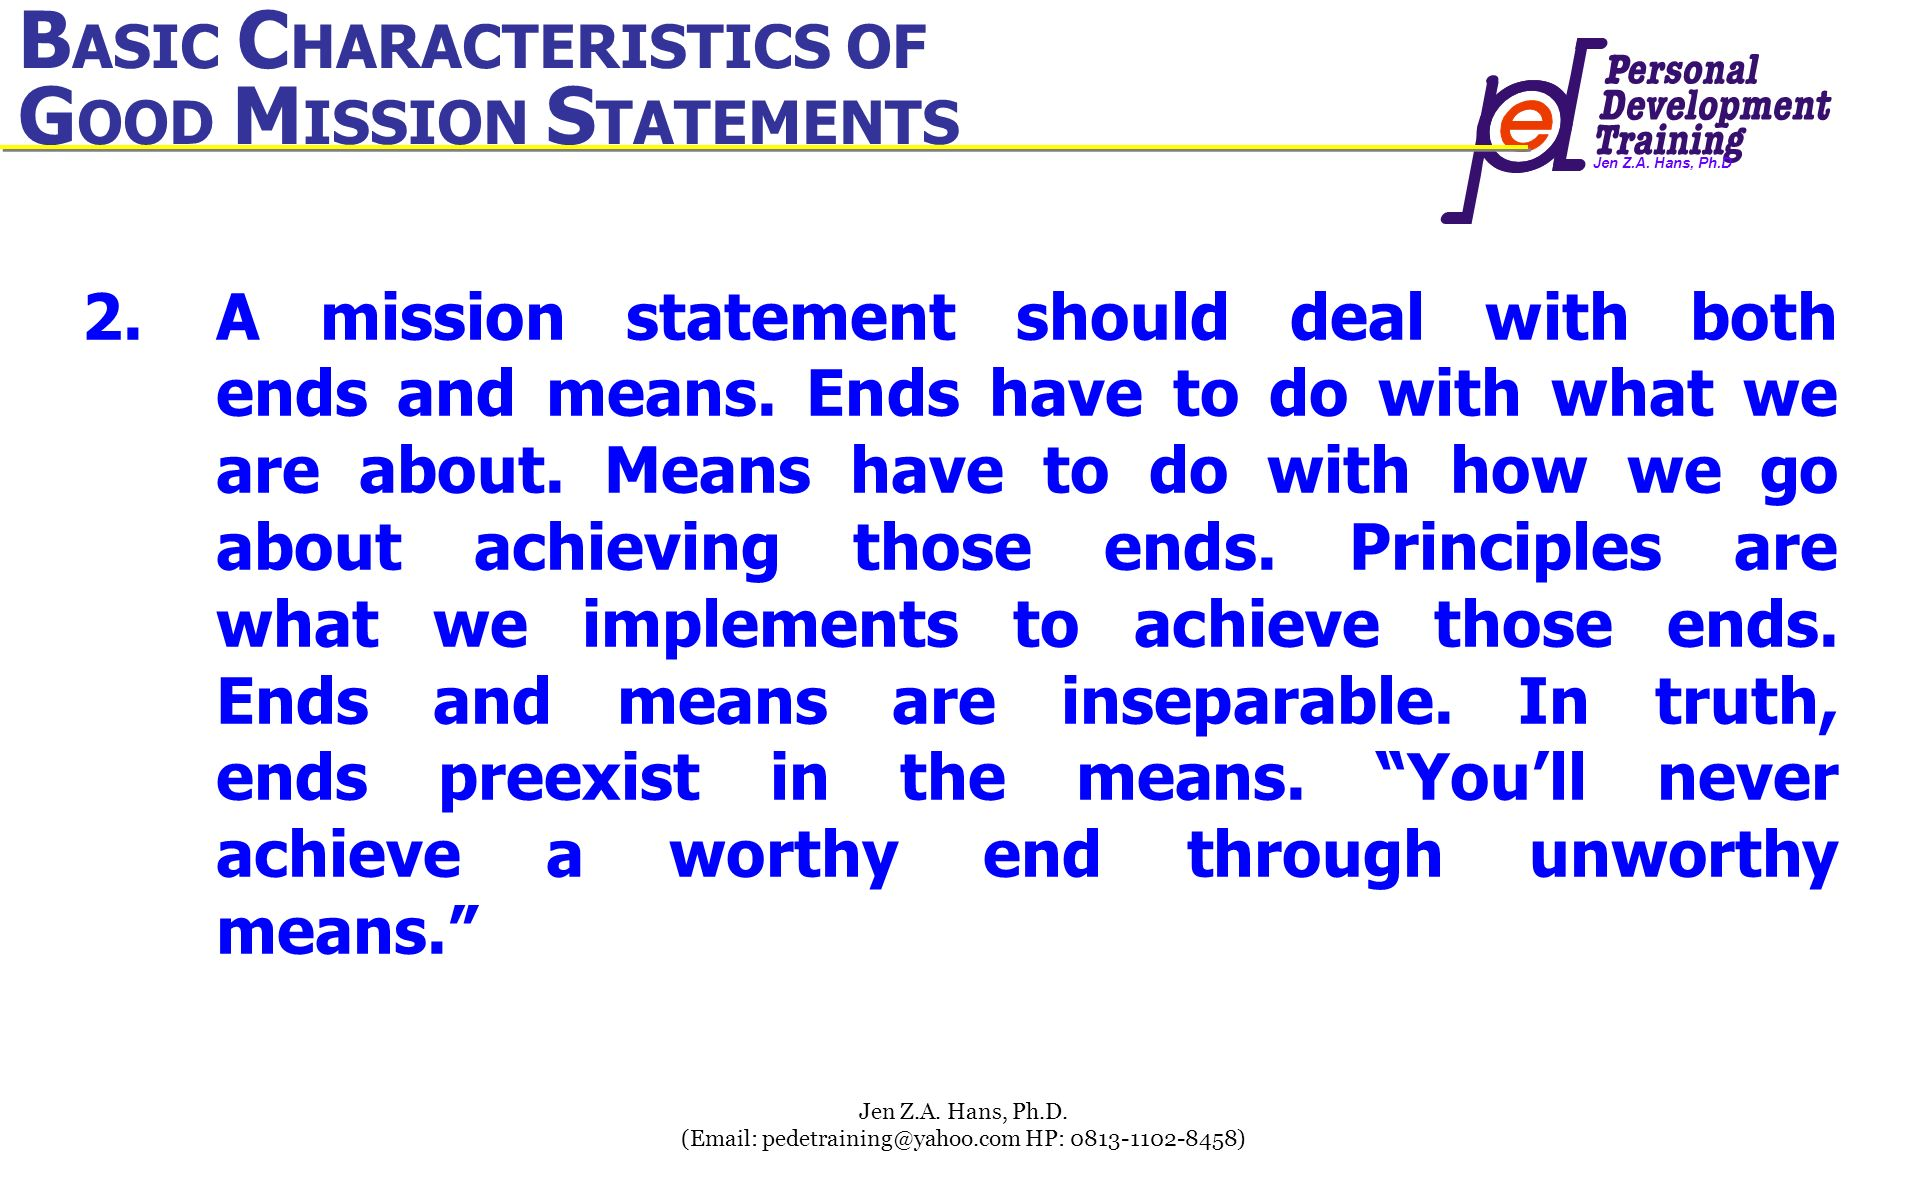 Jen Z.A. Hans, Ph.D Jen Z.A. Hans, Ph.D. (Email: pedetraining@yahoo.com HP: 0813-1102-8458) 2.A mission statement should deal with both ends and means